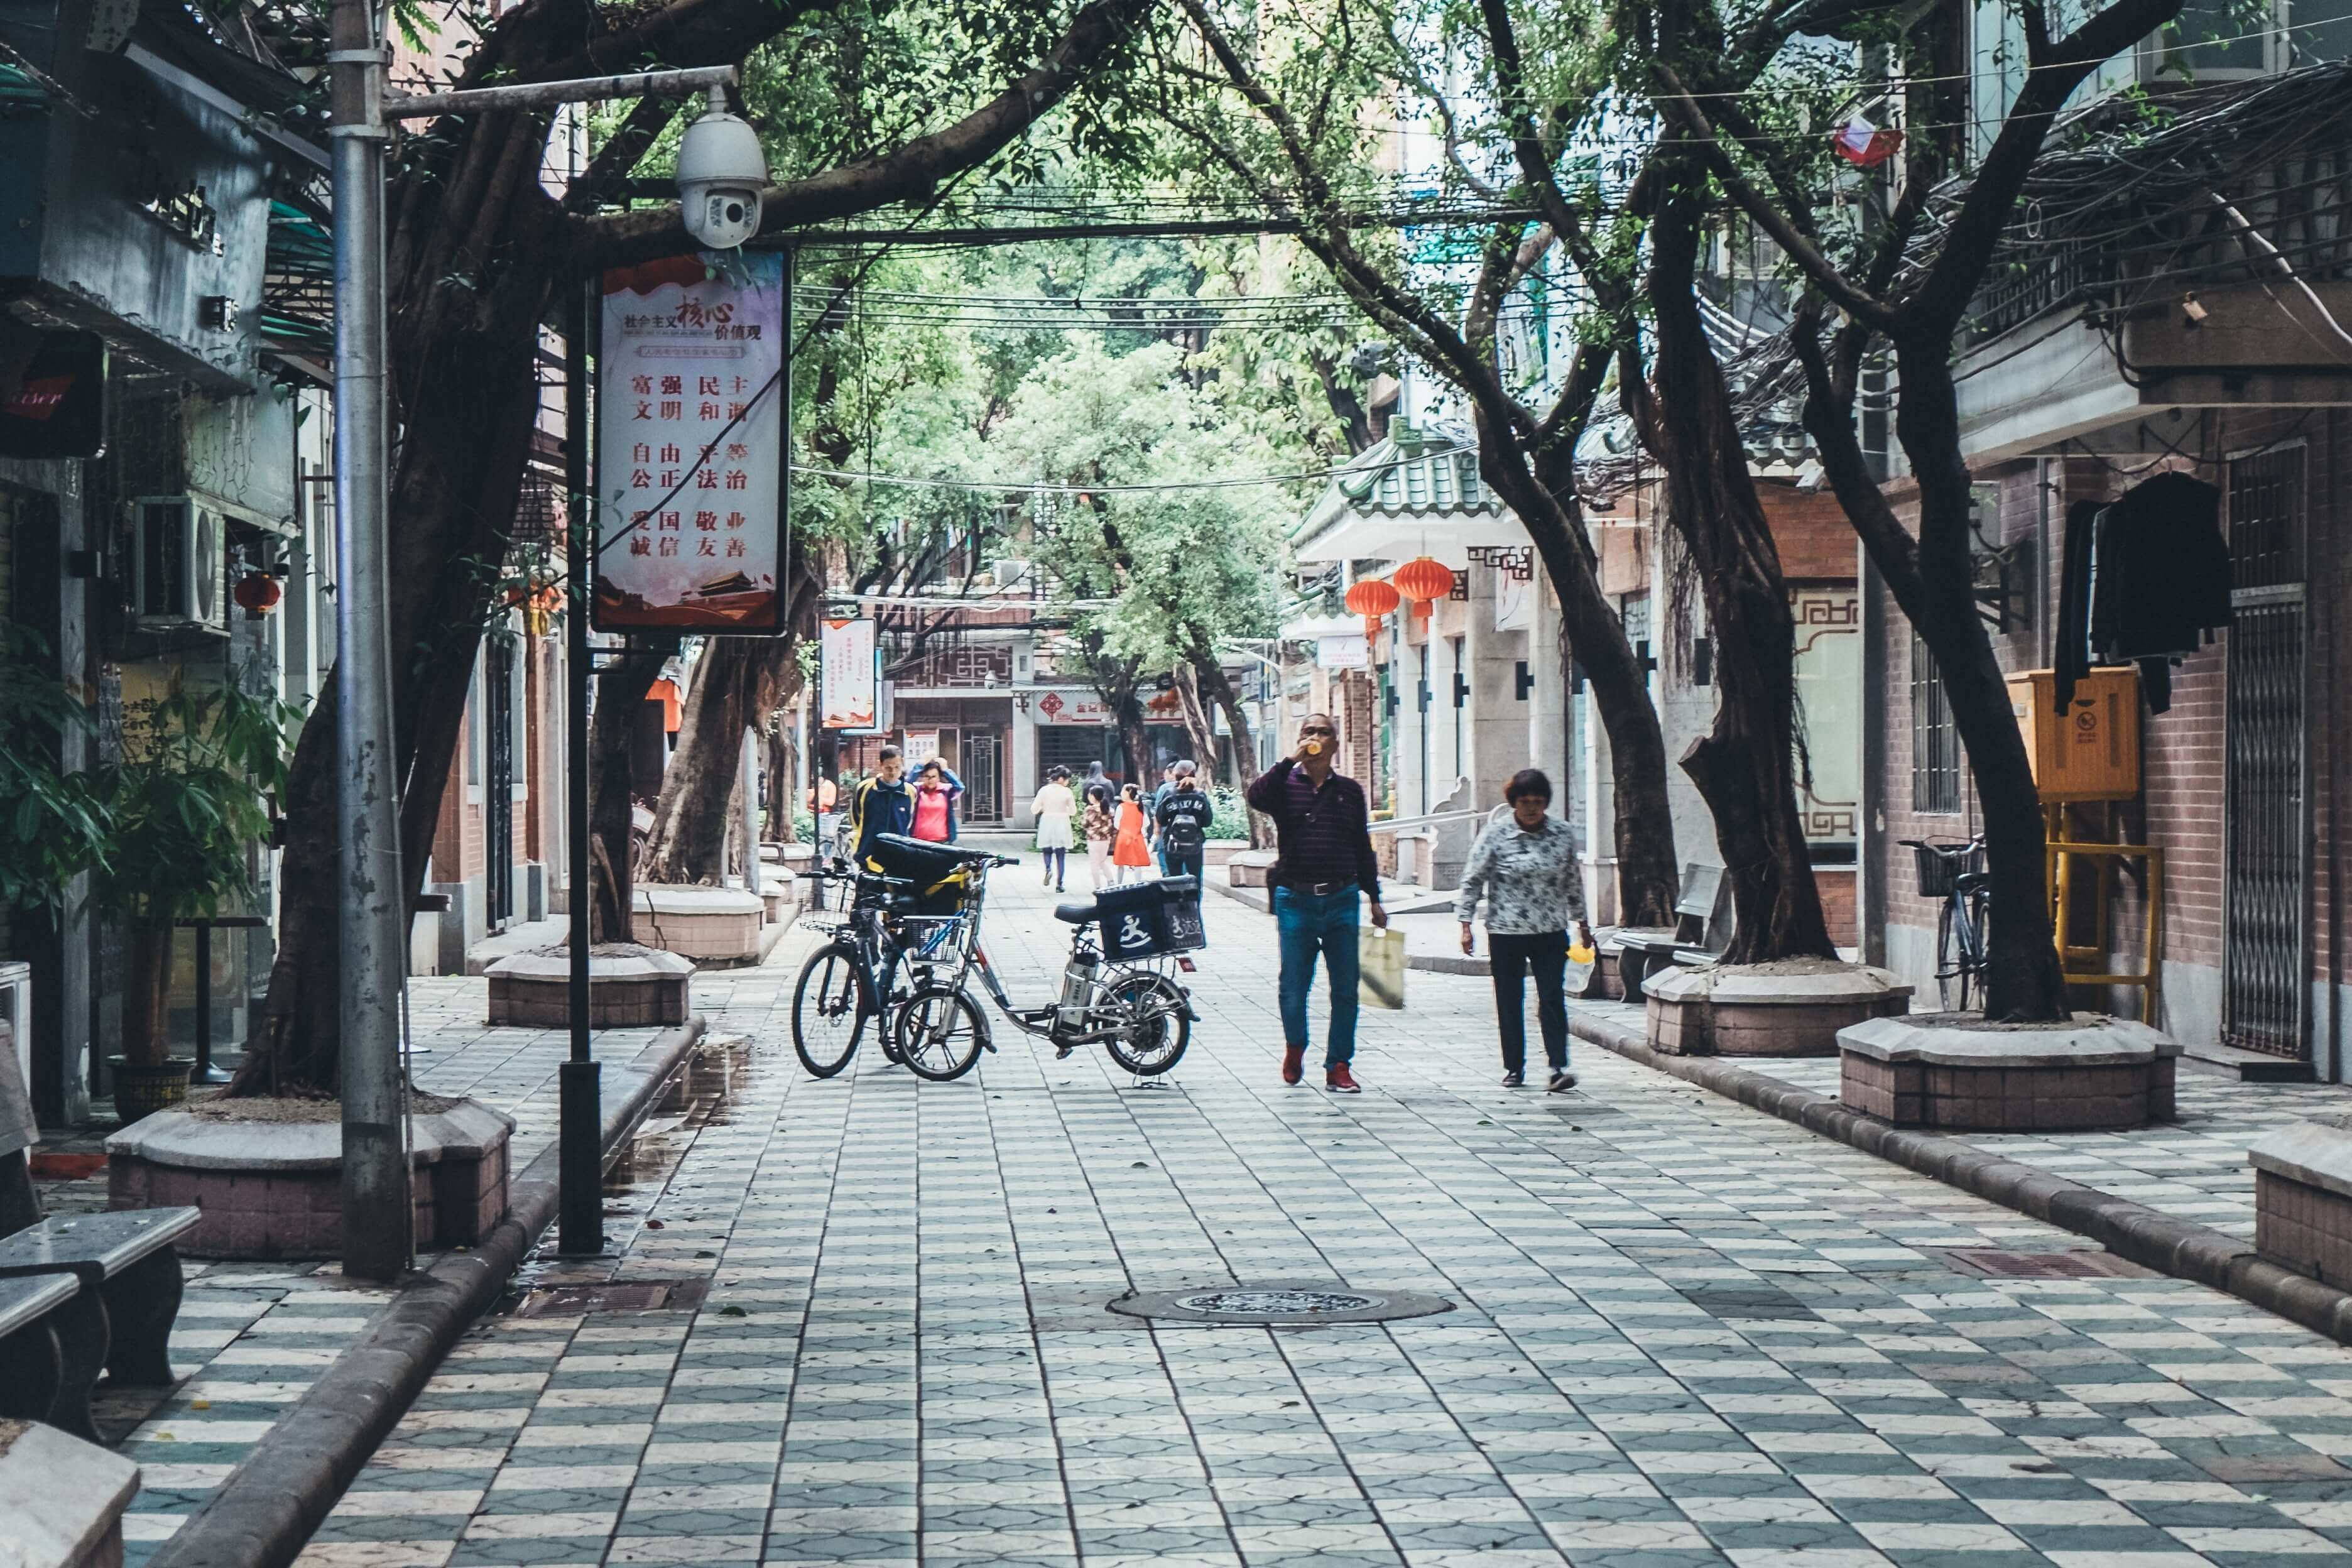 Common mistakes made by Chinese language learners